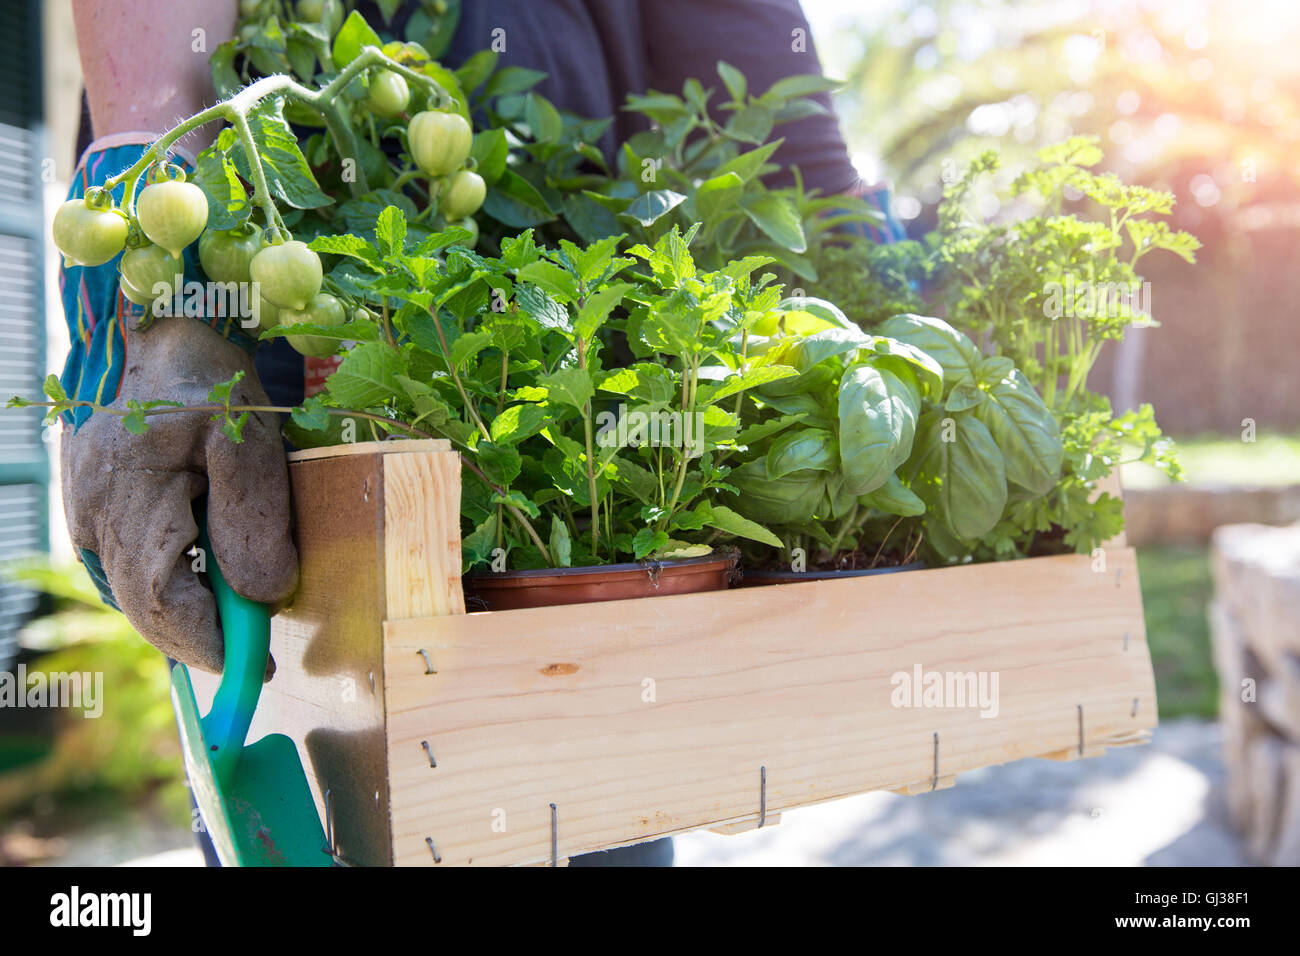 Woman carrying crate d'herbe plantes en jardin Photo Stock